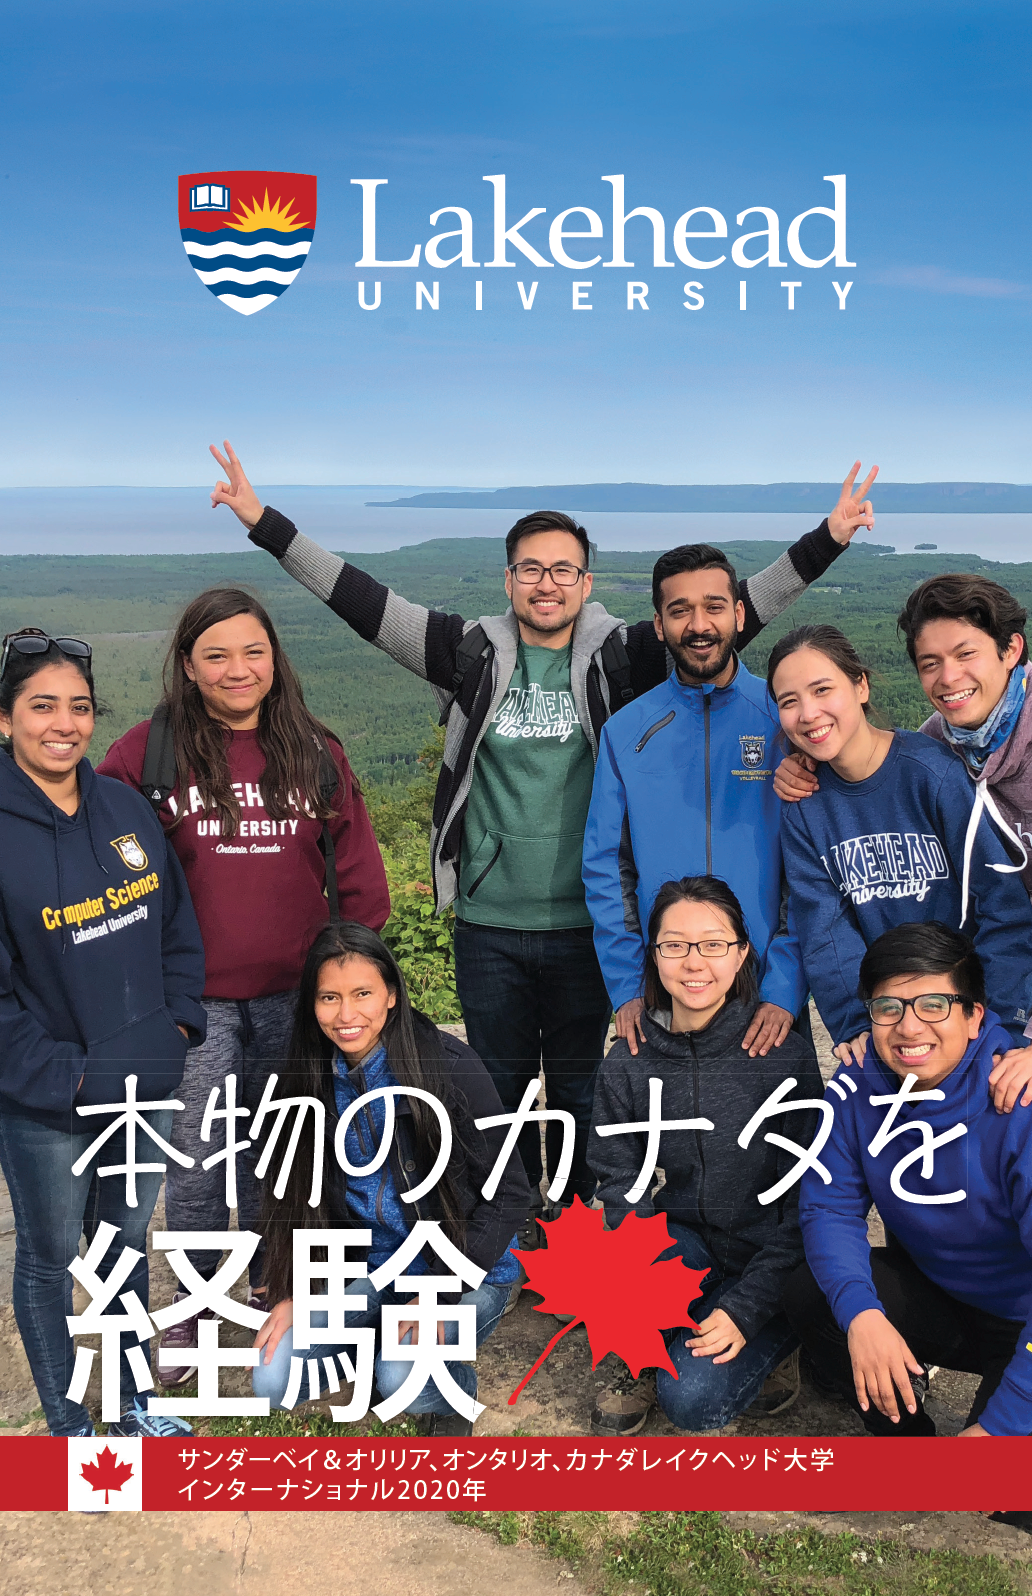 The cover of the 2019 Lakehead International Brochure in Japanese.